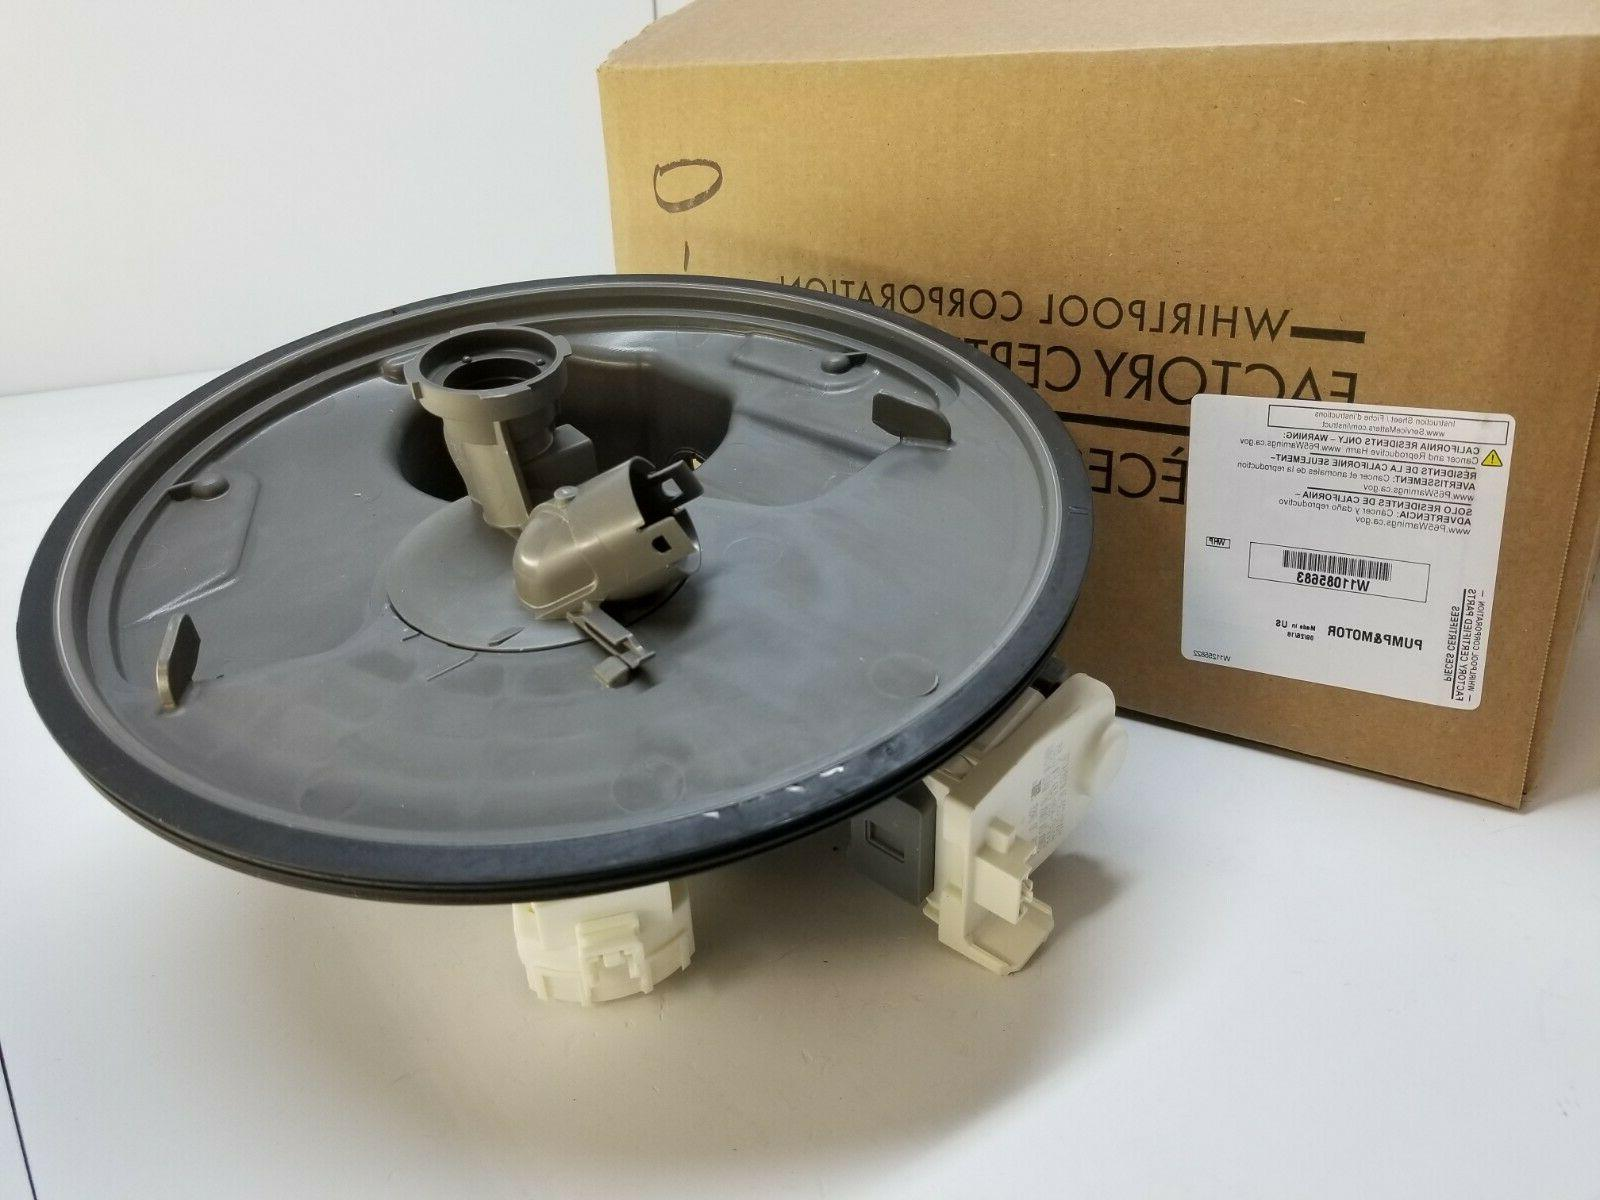 w11085683 dishwasher pump and motor new part